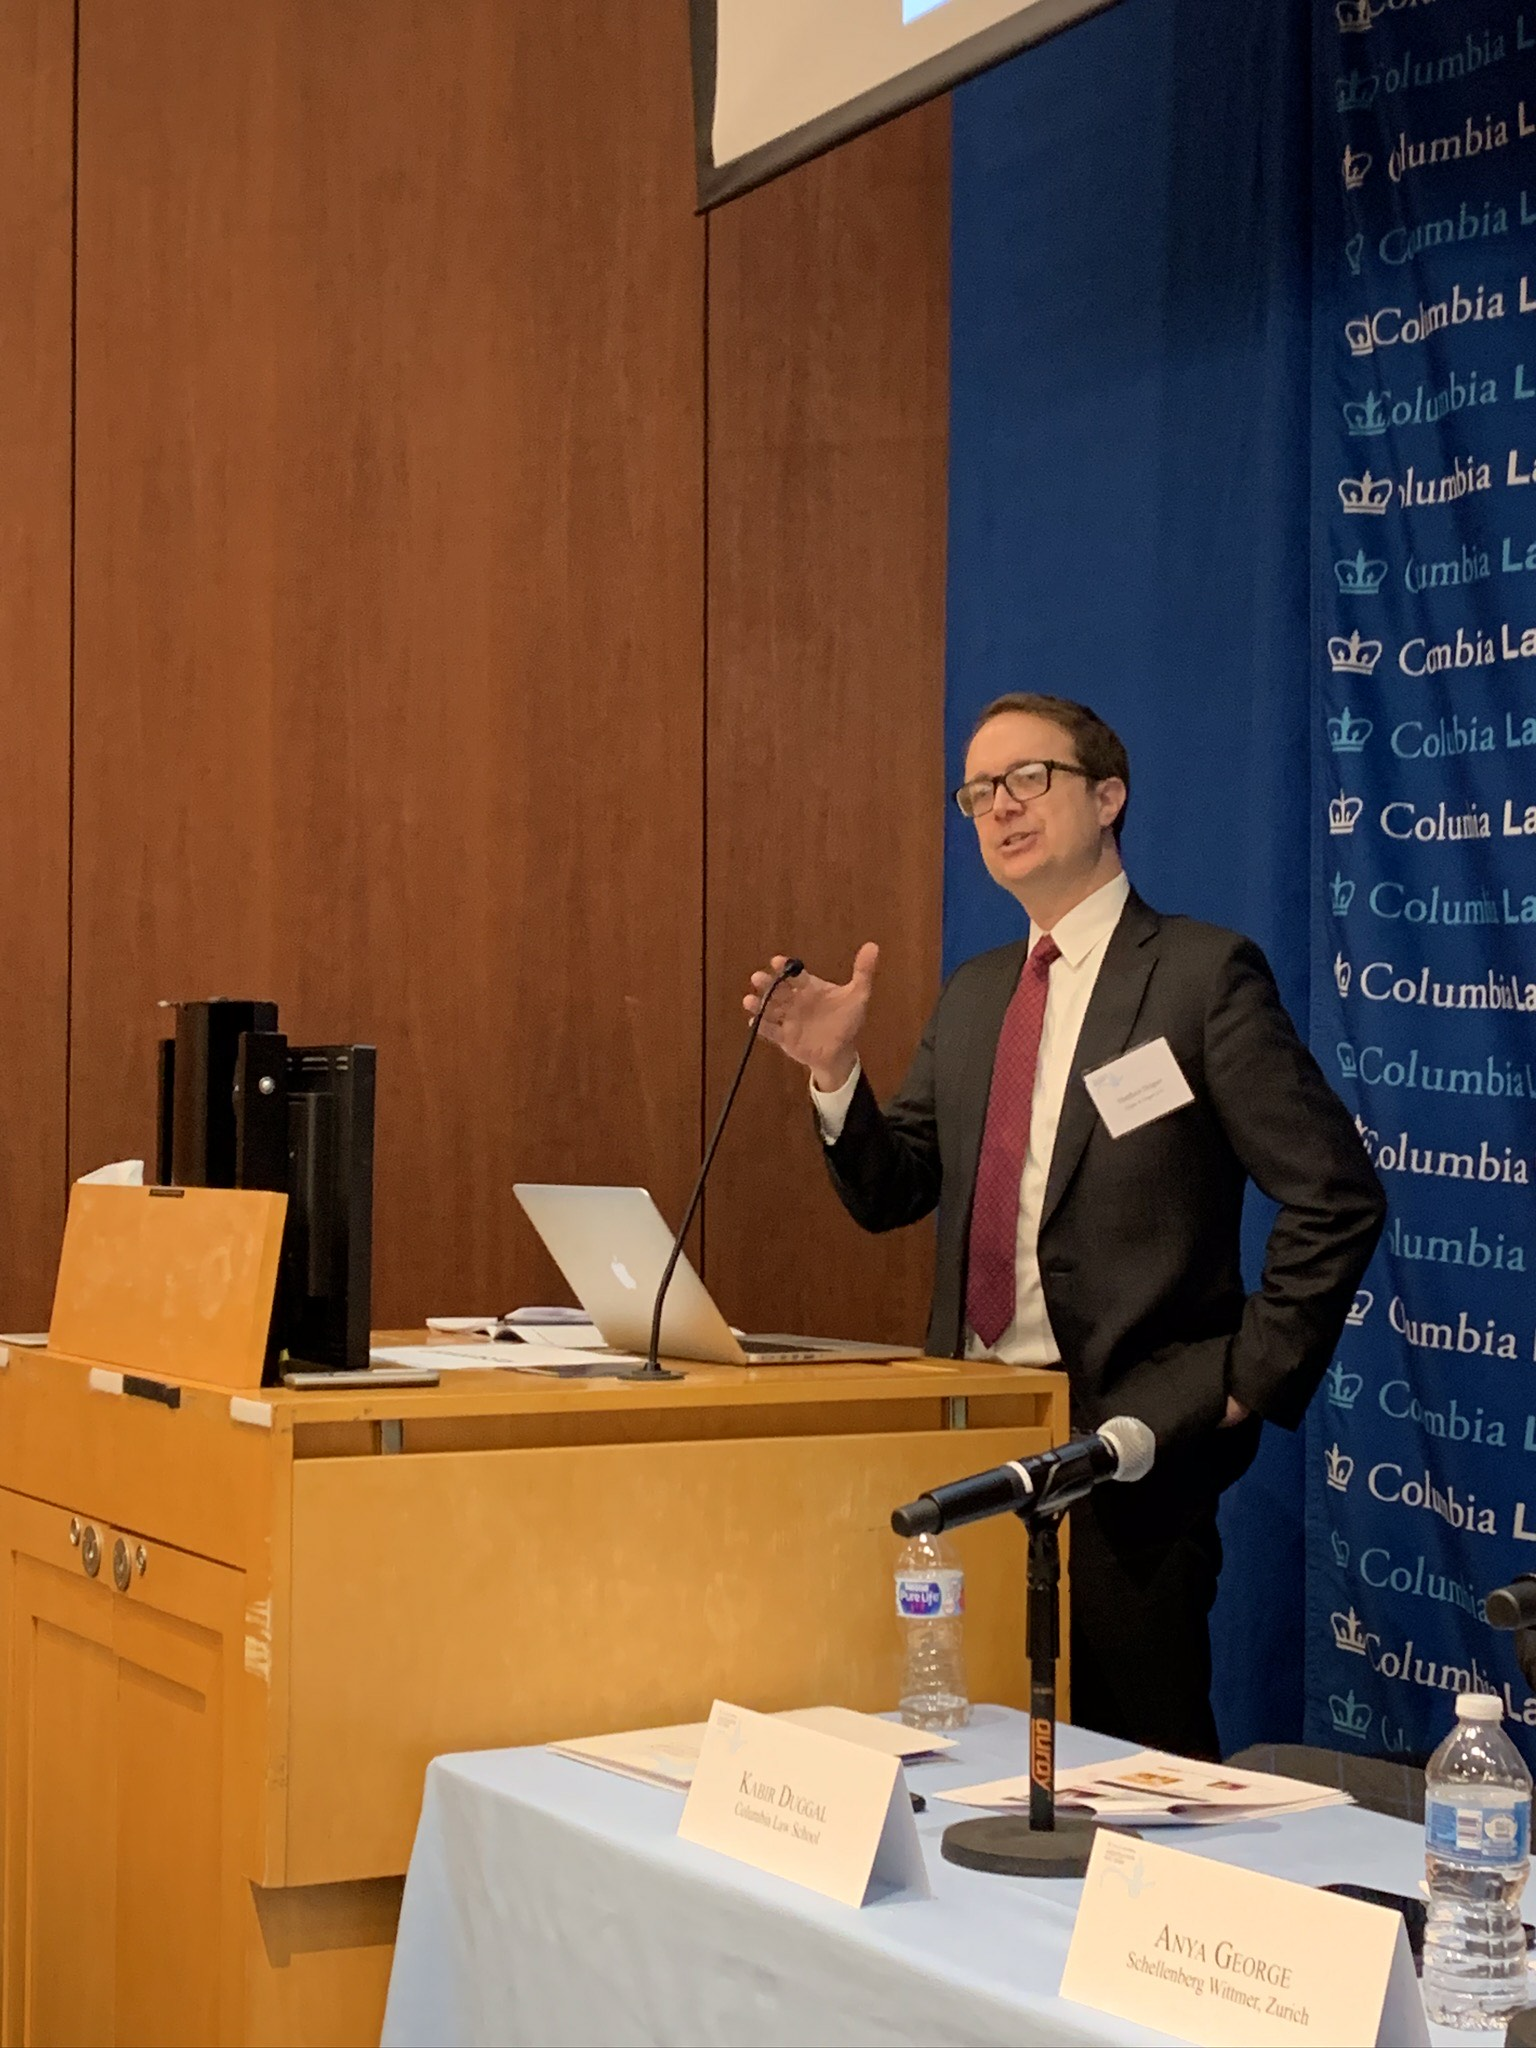 Matthew Draper Presents on Climate Change Arbitration at Columbia Law School